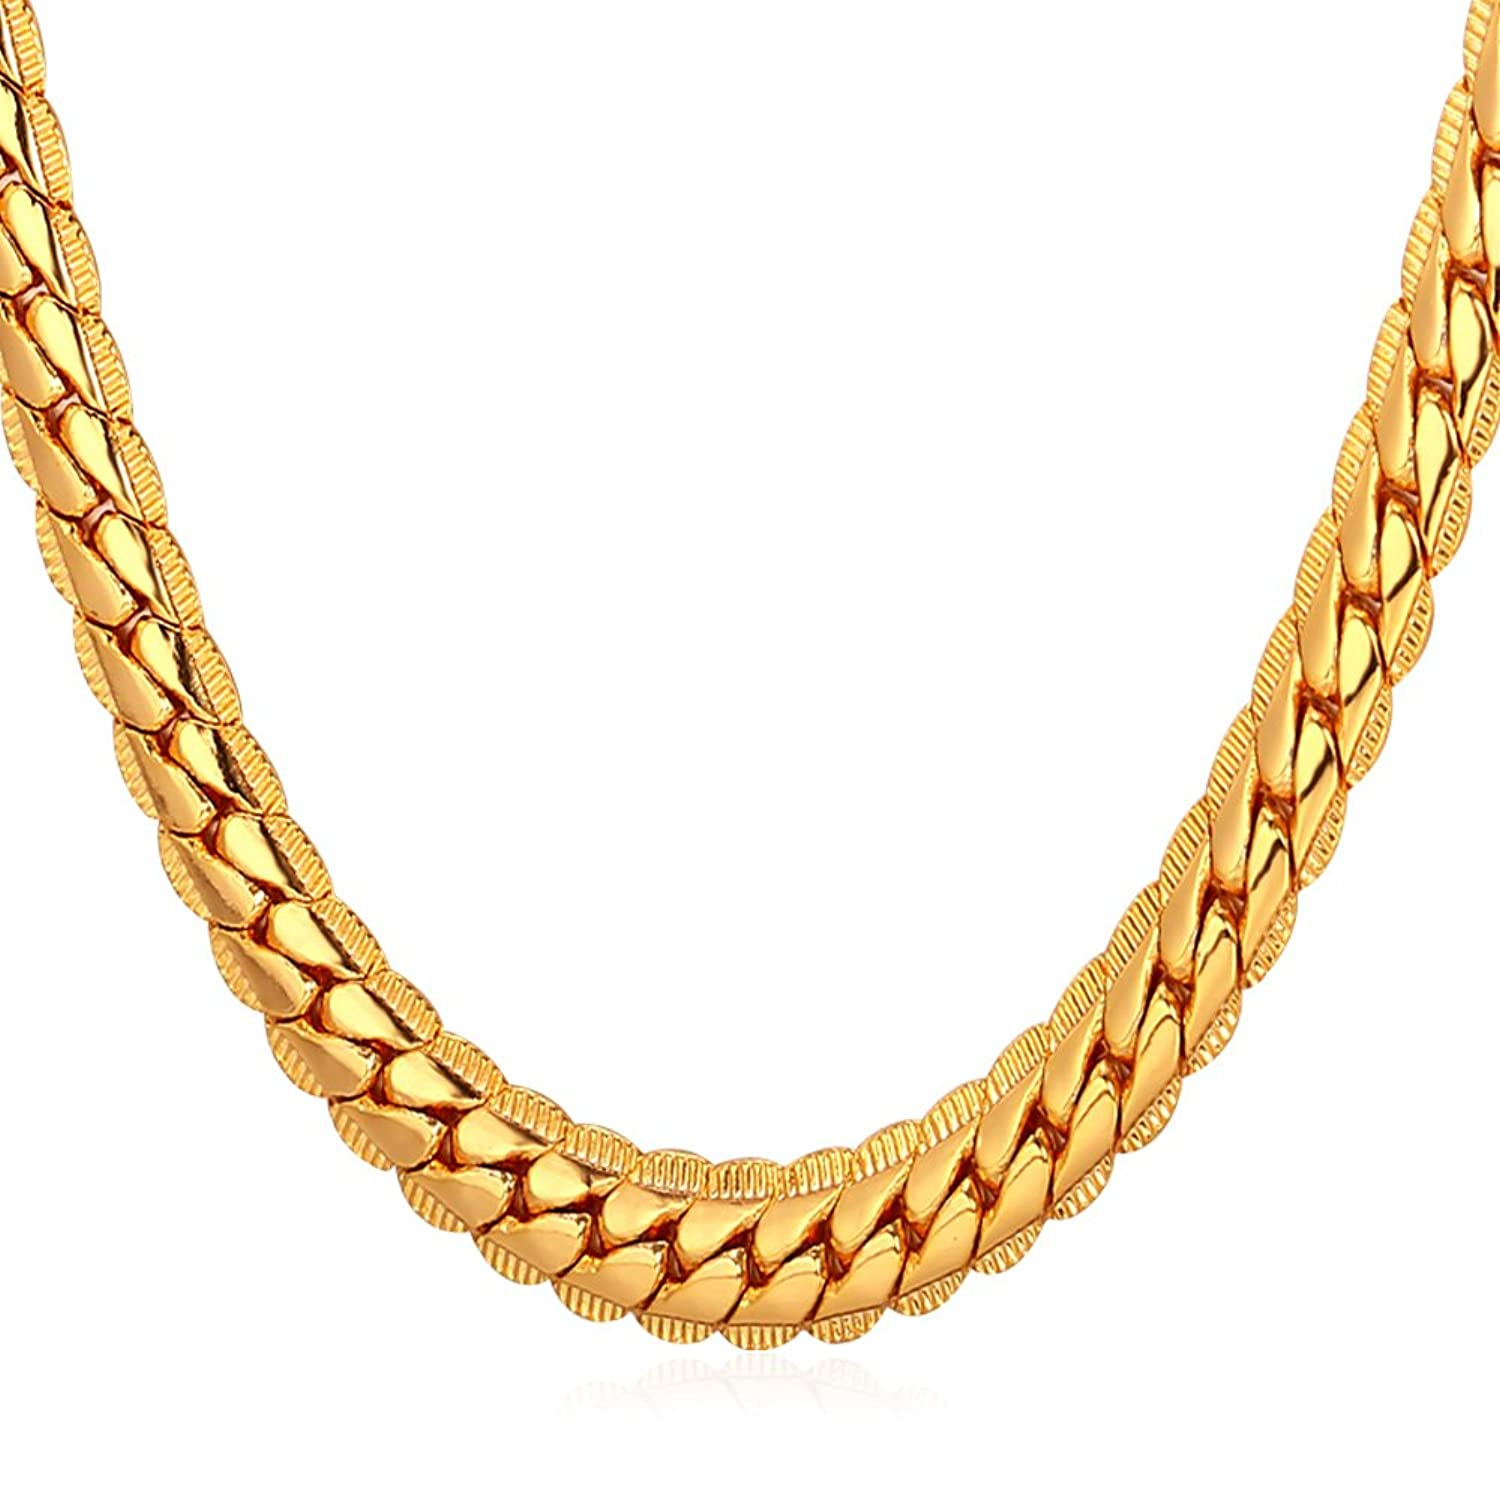 Beautiful 22 carat gold chains with matching pendant designs latest - U7 18k Gold Plated Necklace With 18k Stamp Men Jewelry 4 Colors 6 Mm